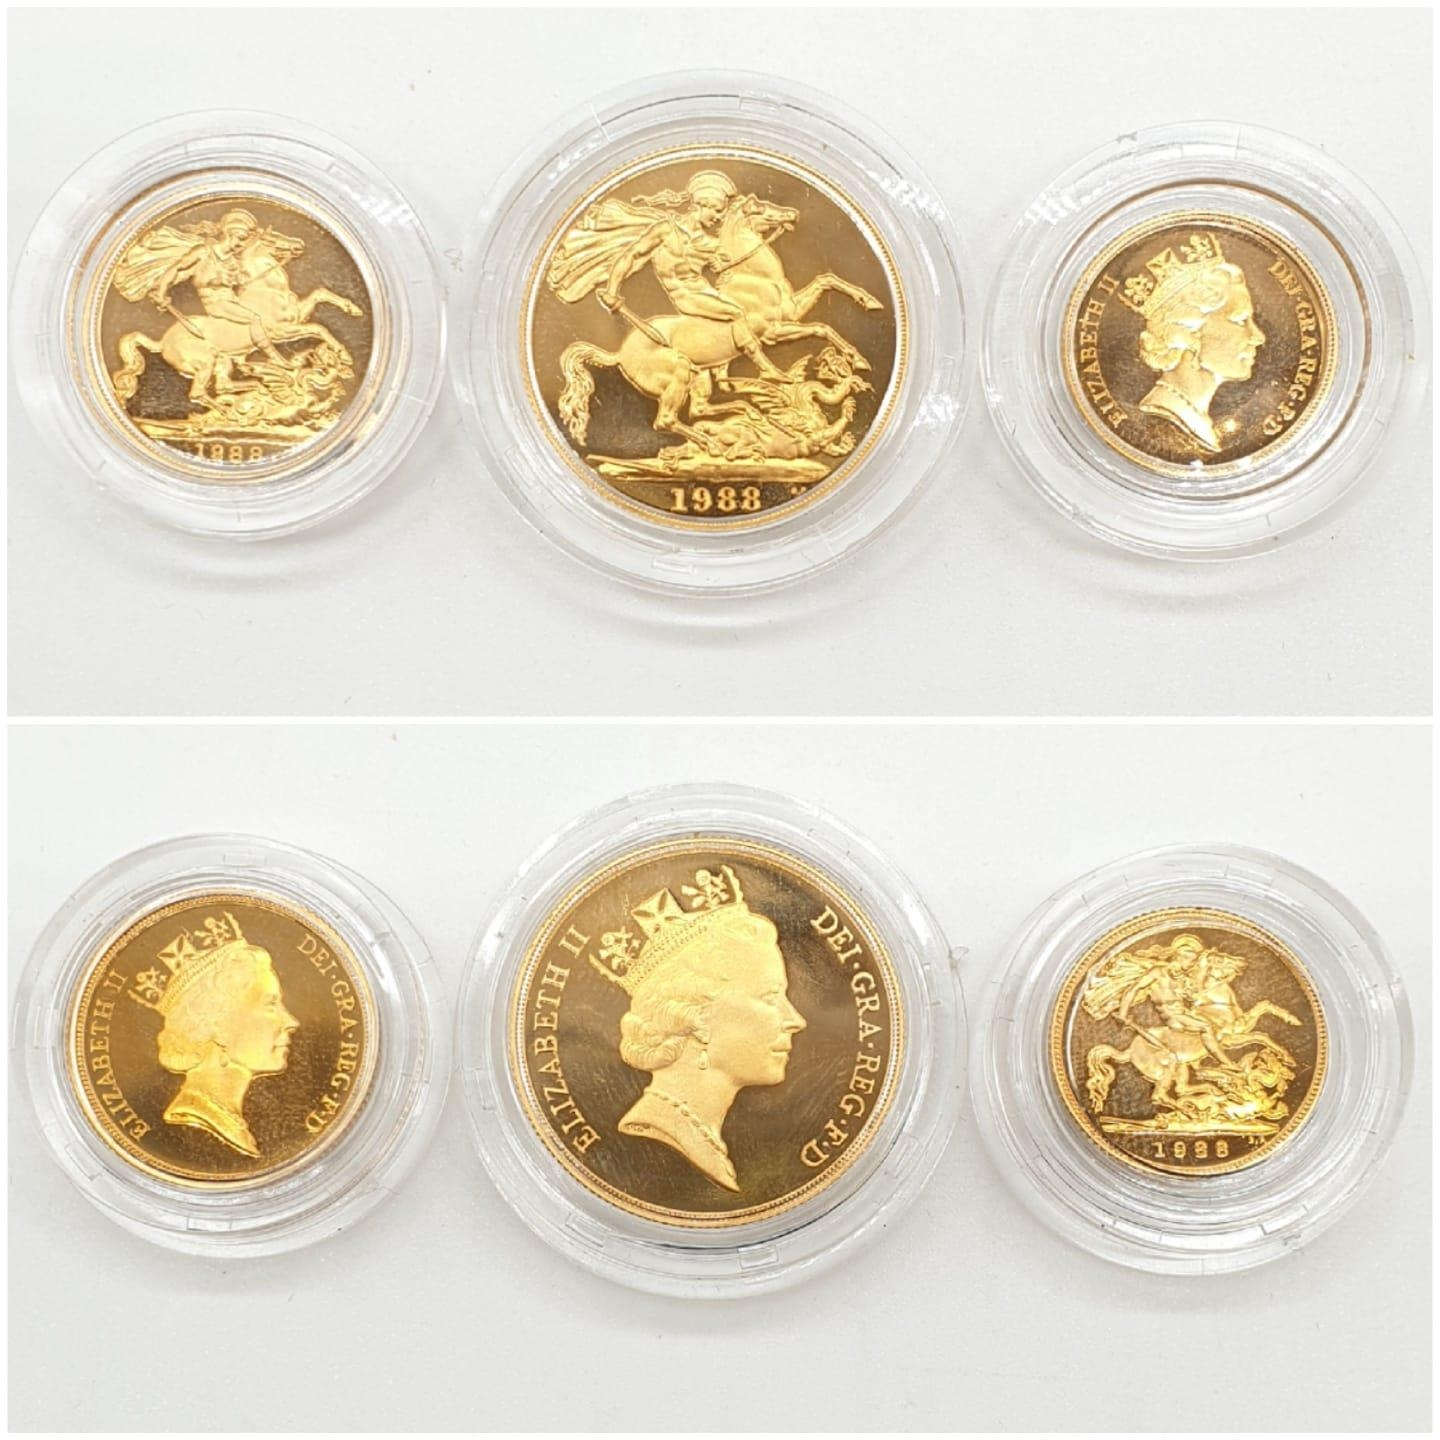 1988 UK GOLD PROOF 3 COIN COLLECTION TO INCLUDE A DOUBLE SOVEREIGN, A SOVEREIGN AND A HALF - Image 2 of 6